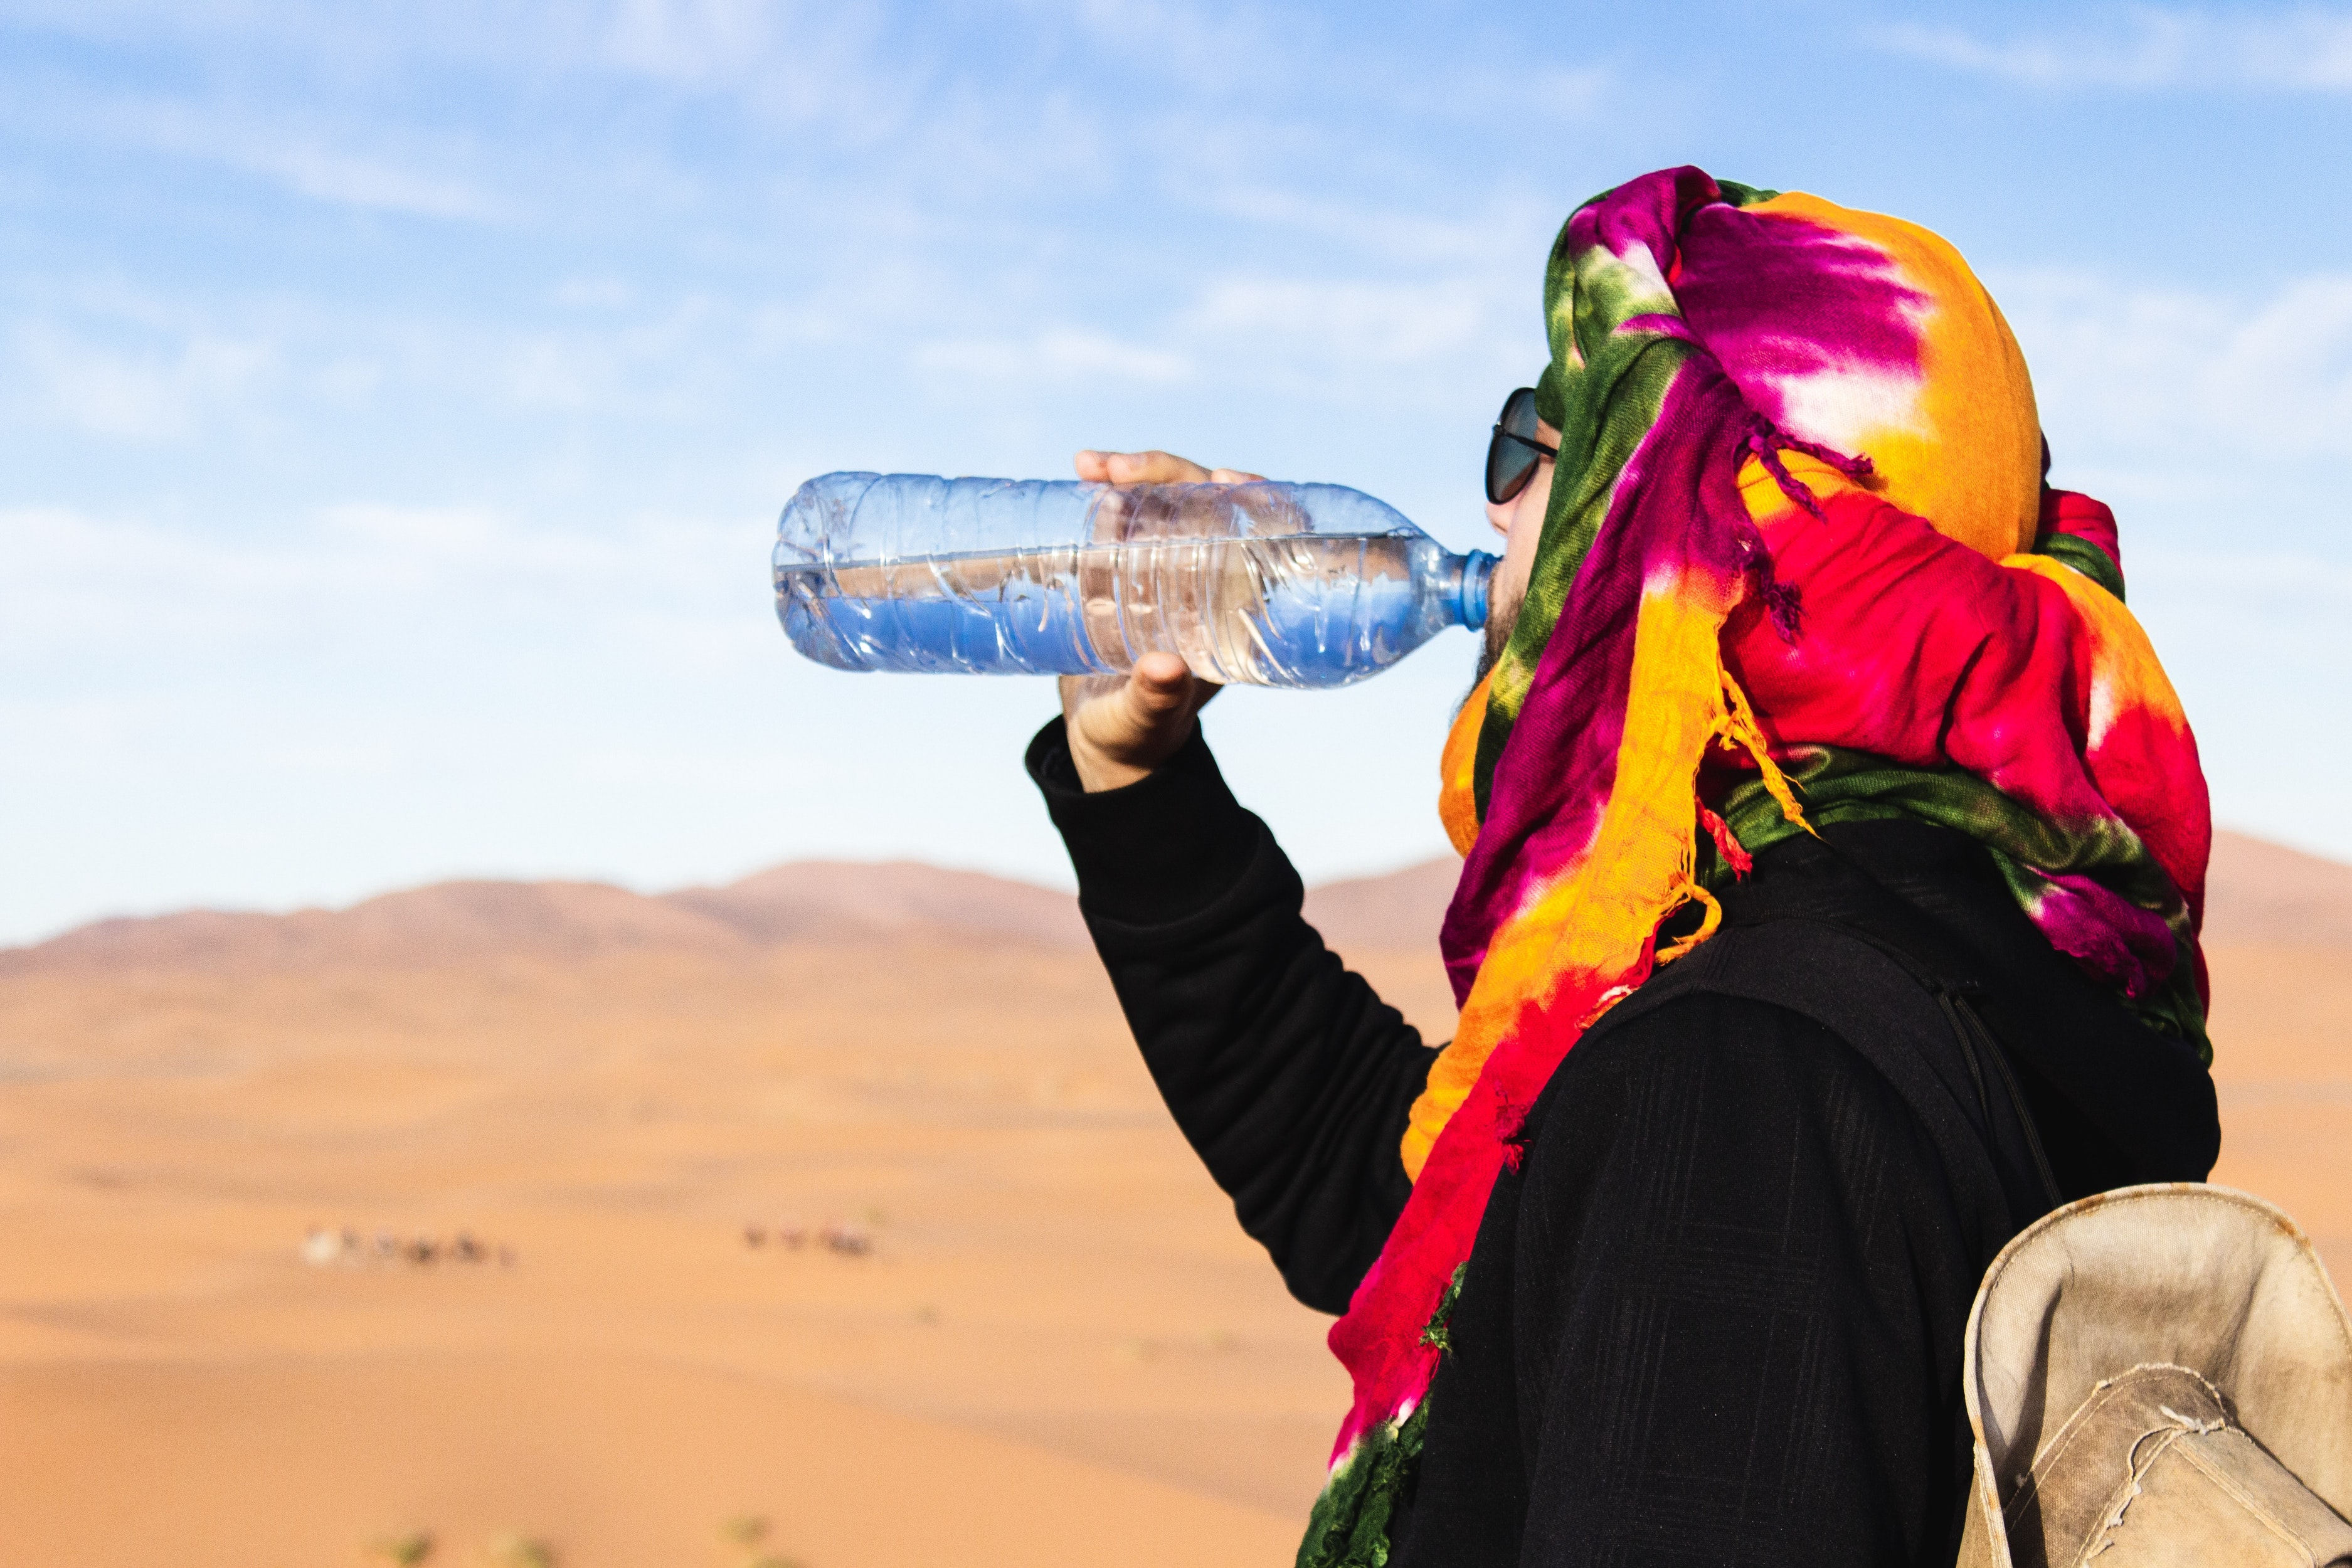 A man in the middle of the desert drinking water. It is important that we are staying hydrated.